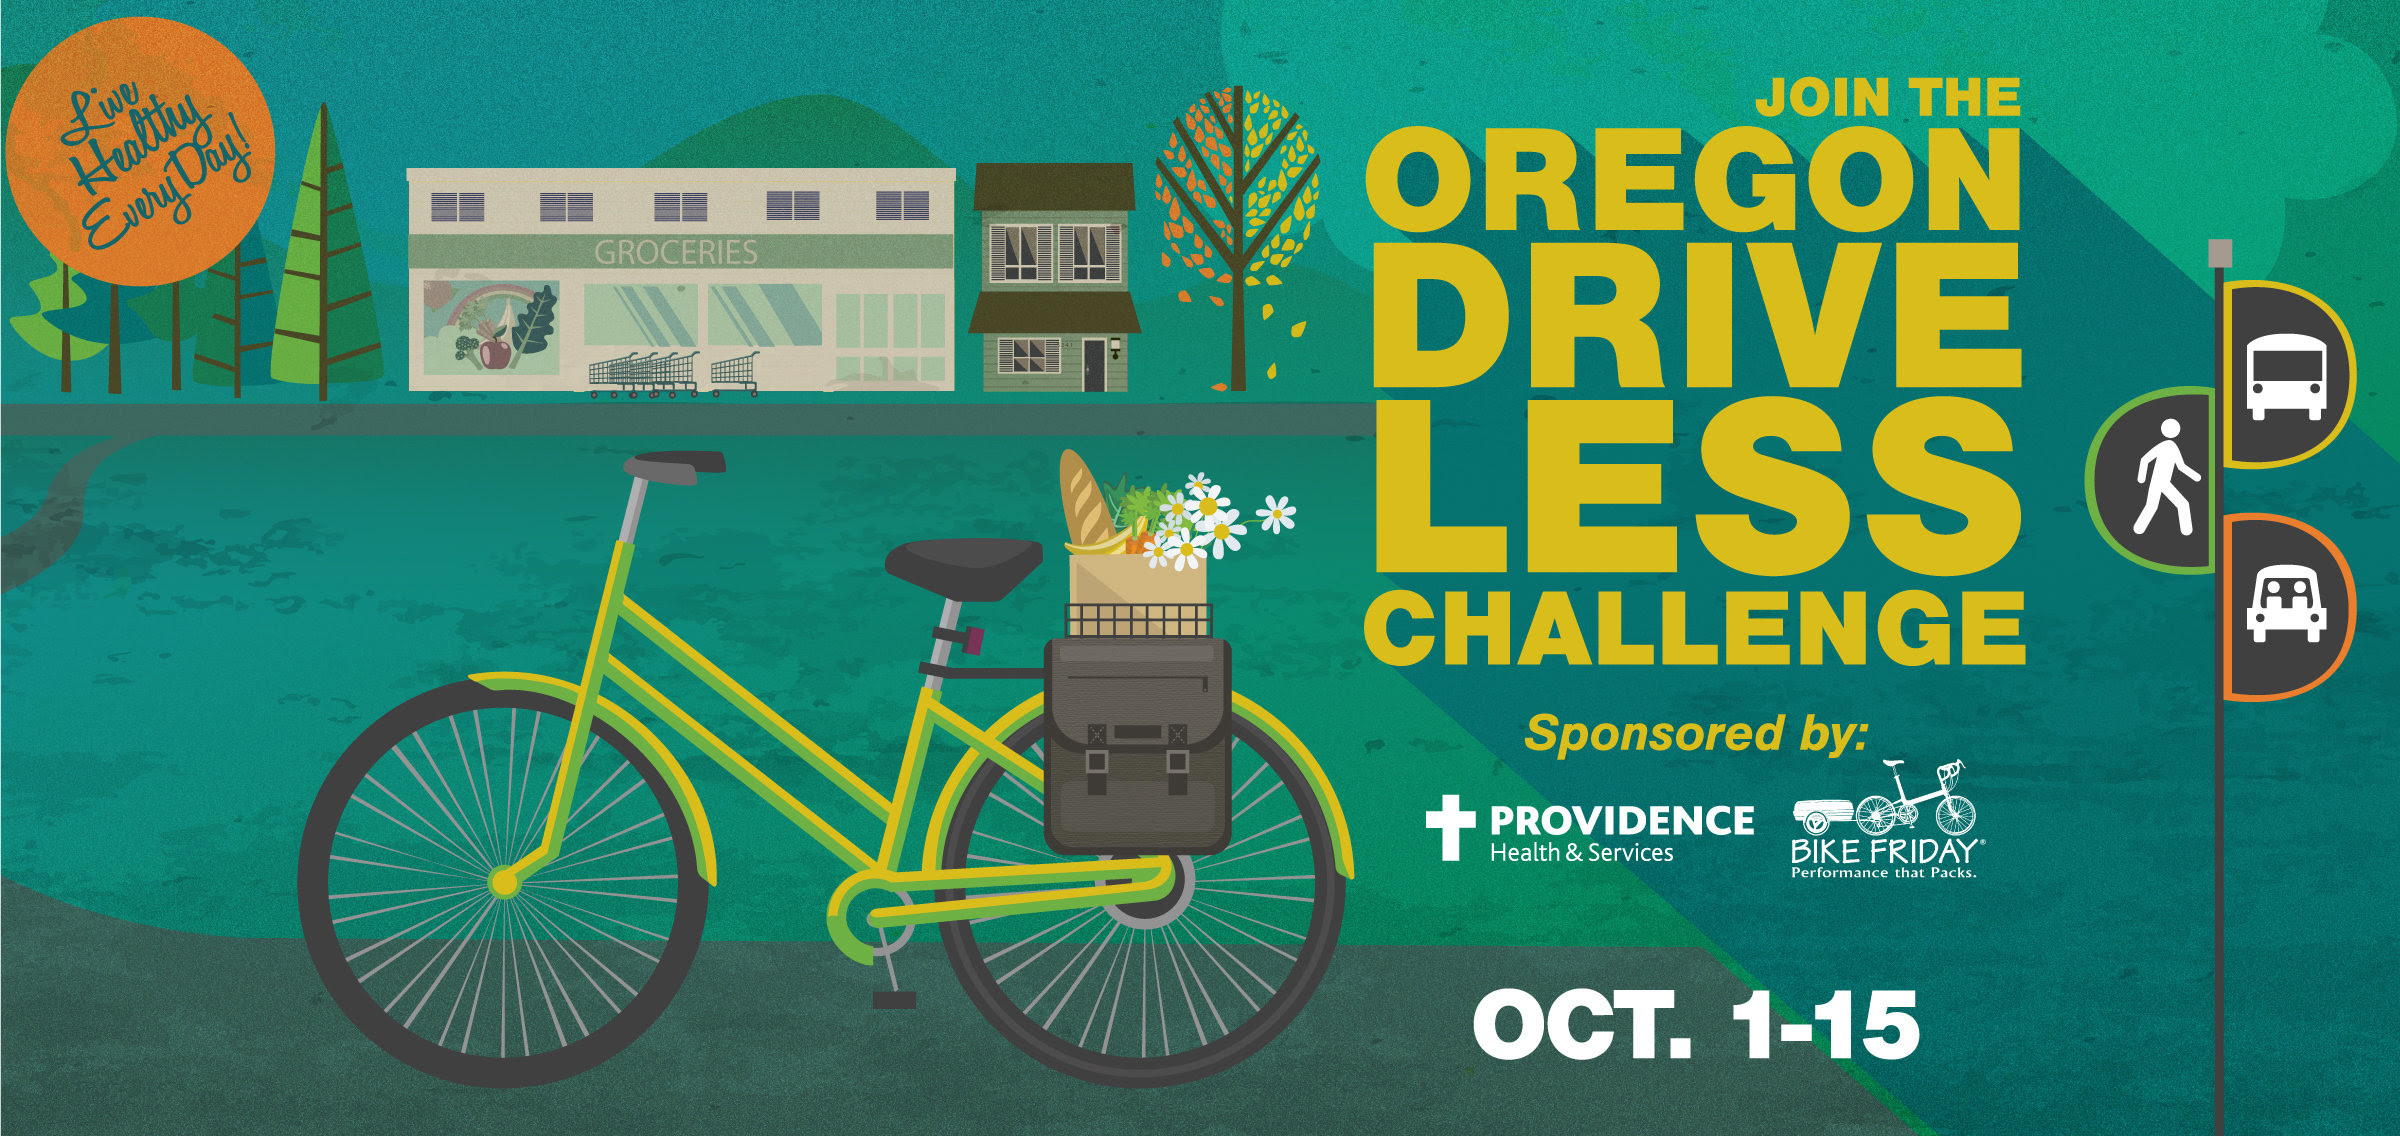 Discover healthy, green travel options for work, school, errands, and play—join the Oregon Drive Less Challenge Oct. 1-15! Burn calories instead of gas by biking to work, or walking to the store. Divide the ride and the cost by carpooling or vanpooling. Take the bus and let someone else do the driving so you can listen to music, or read that page-turning book. Then log your trips at  DriveLessConnect.com  to win weekly and grand prizes! Over 55 prizes will be awarded.